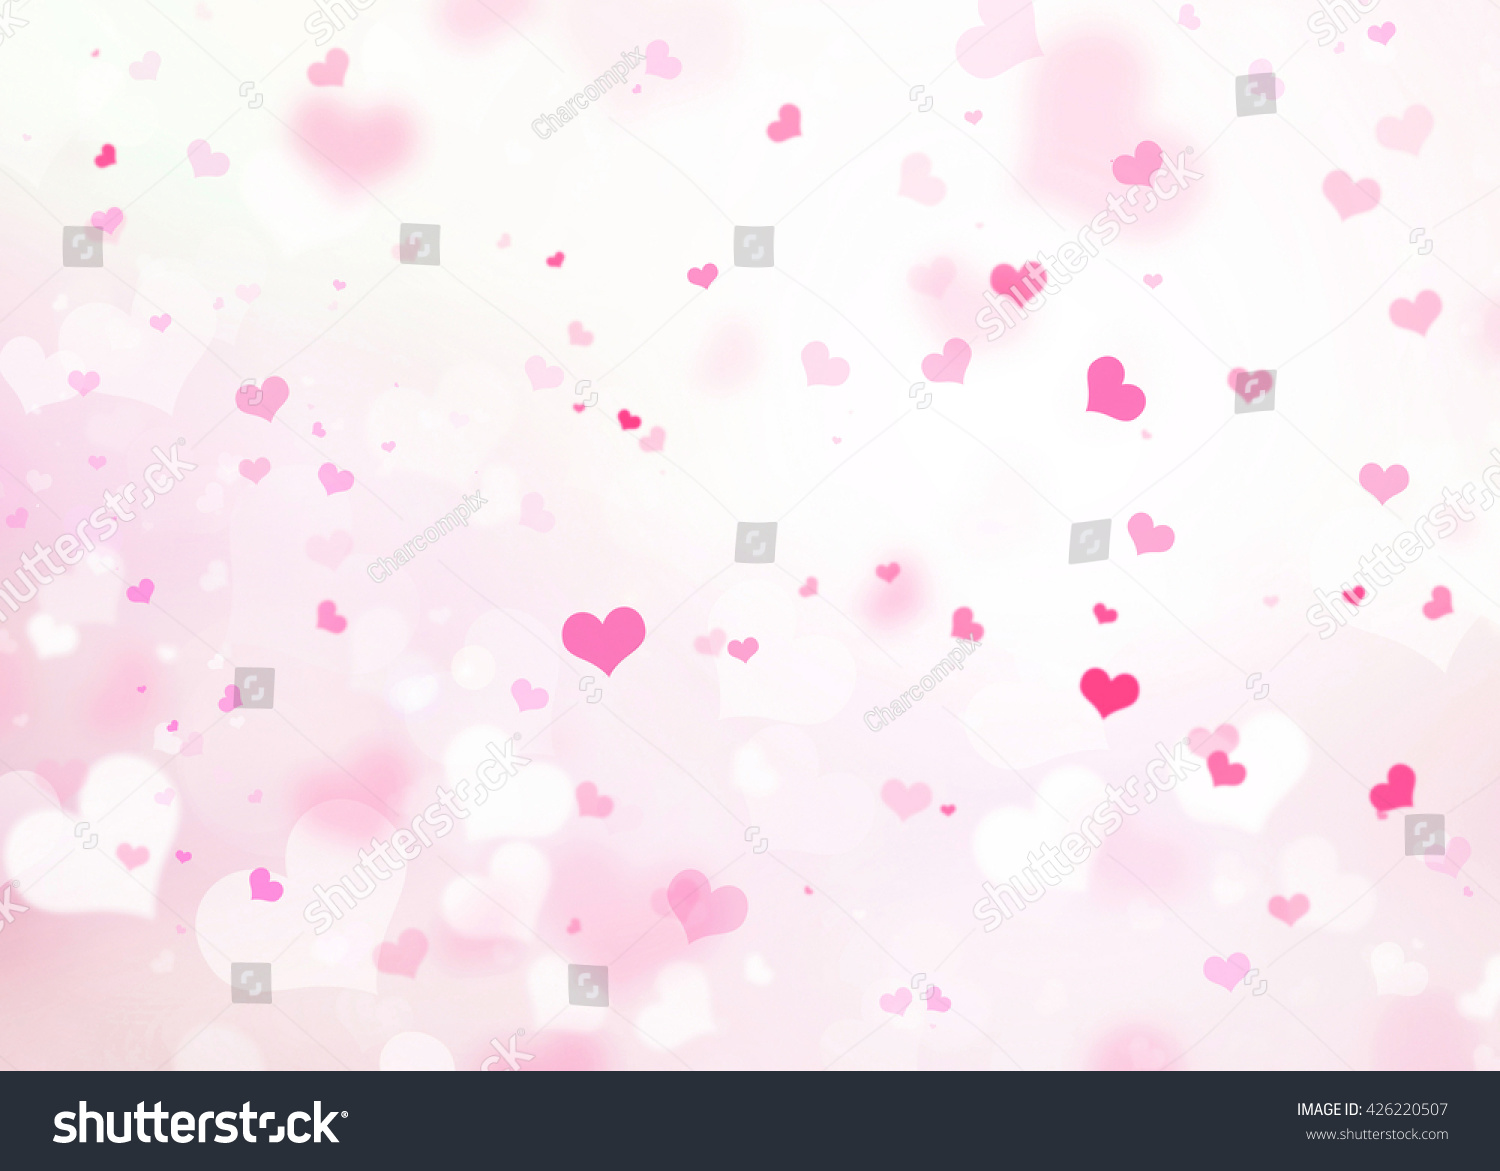 White Heart Valentines Day Abstract Pink Background